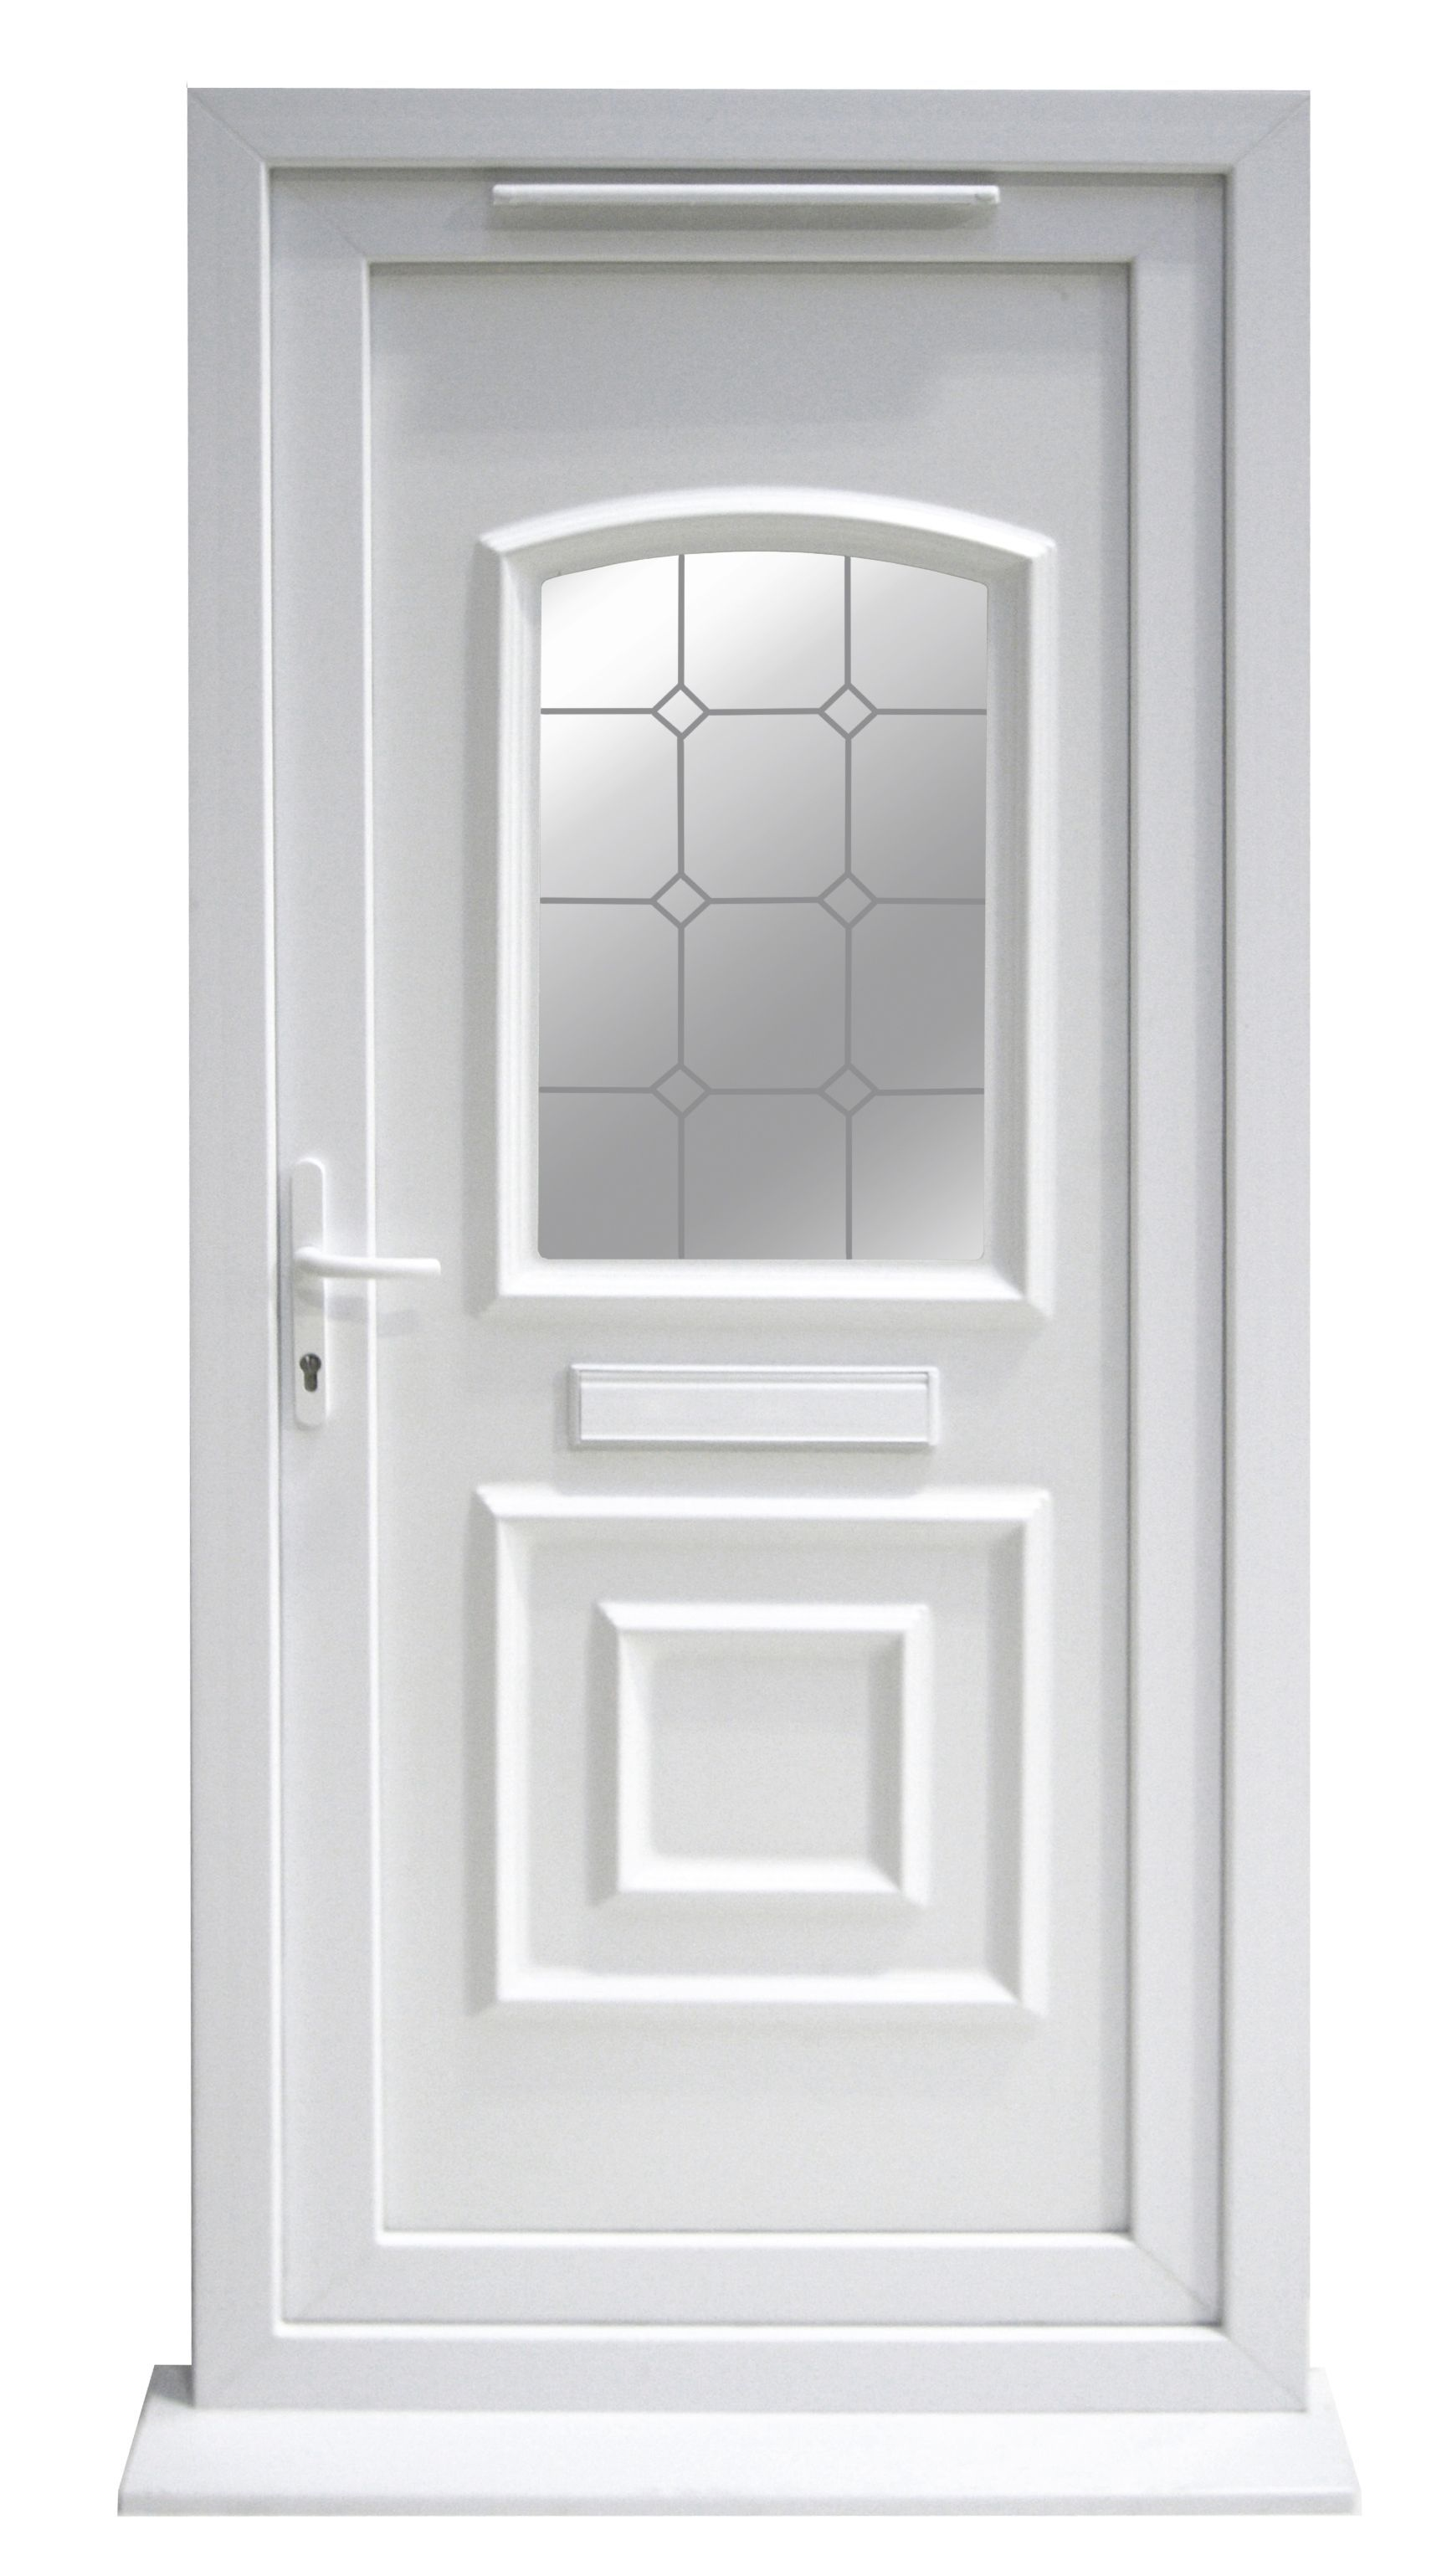 white front door. Ashgrove 2 Panel PVCu White Glazed External Front Door \u0026 Frame Rh, (H)2055mm (W)920mm | Departments DIY At B\u0026Q O